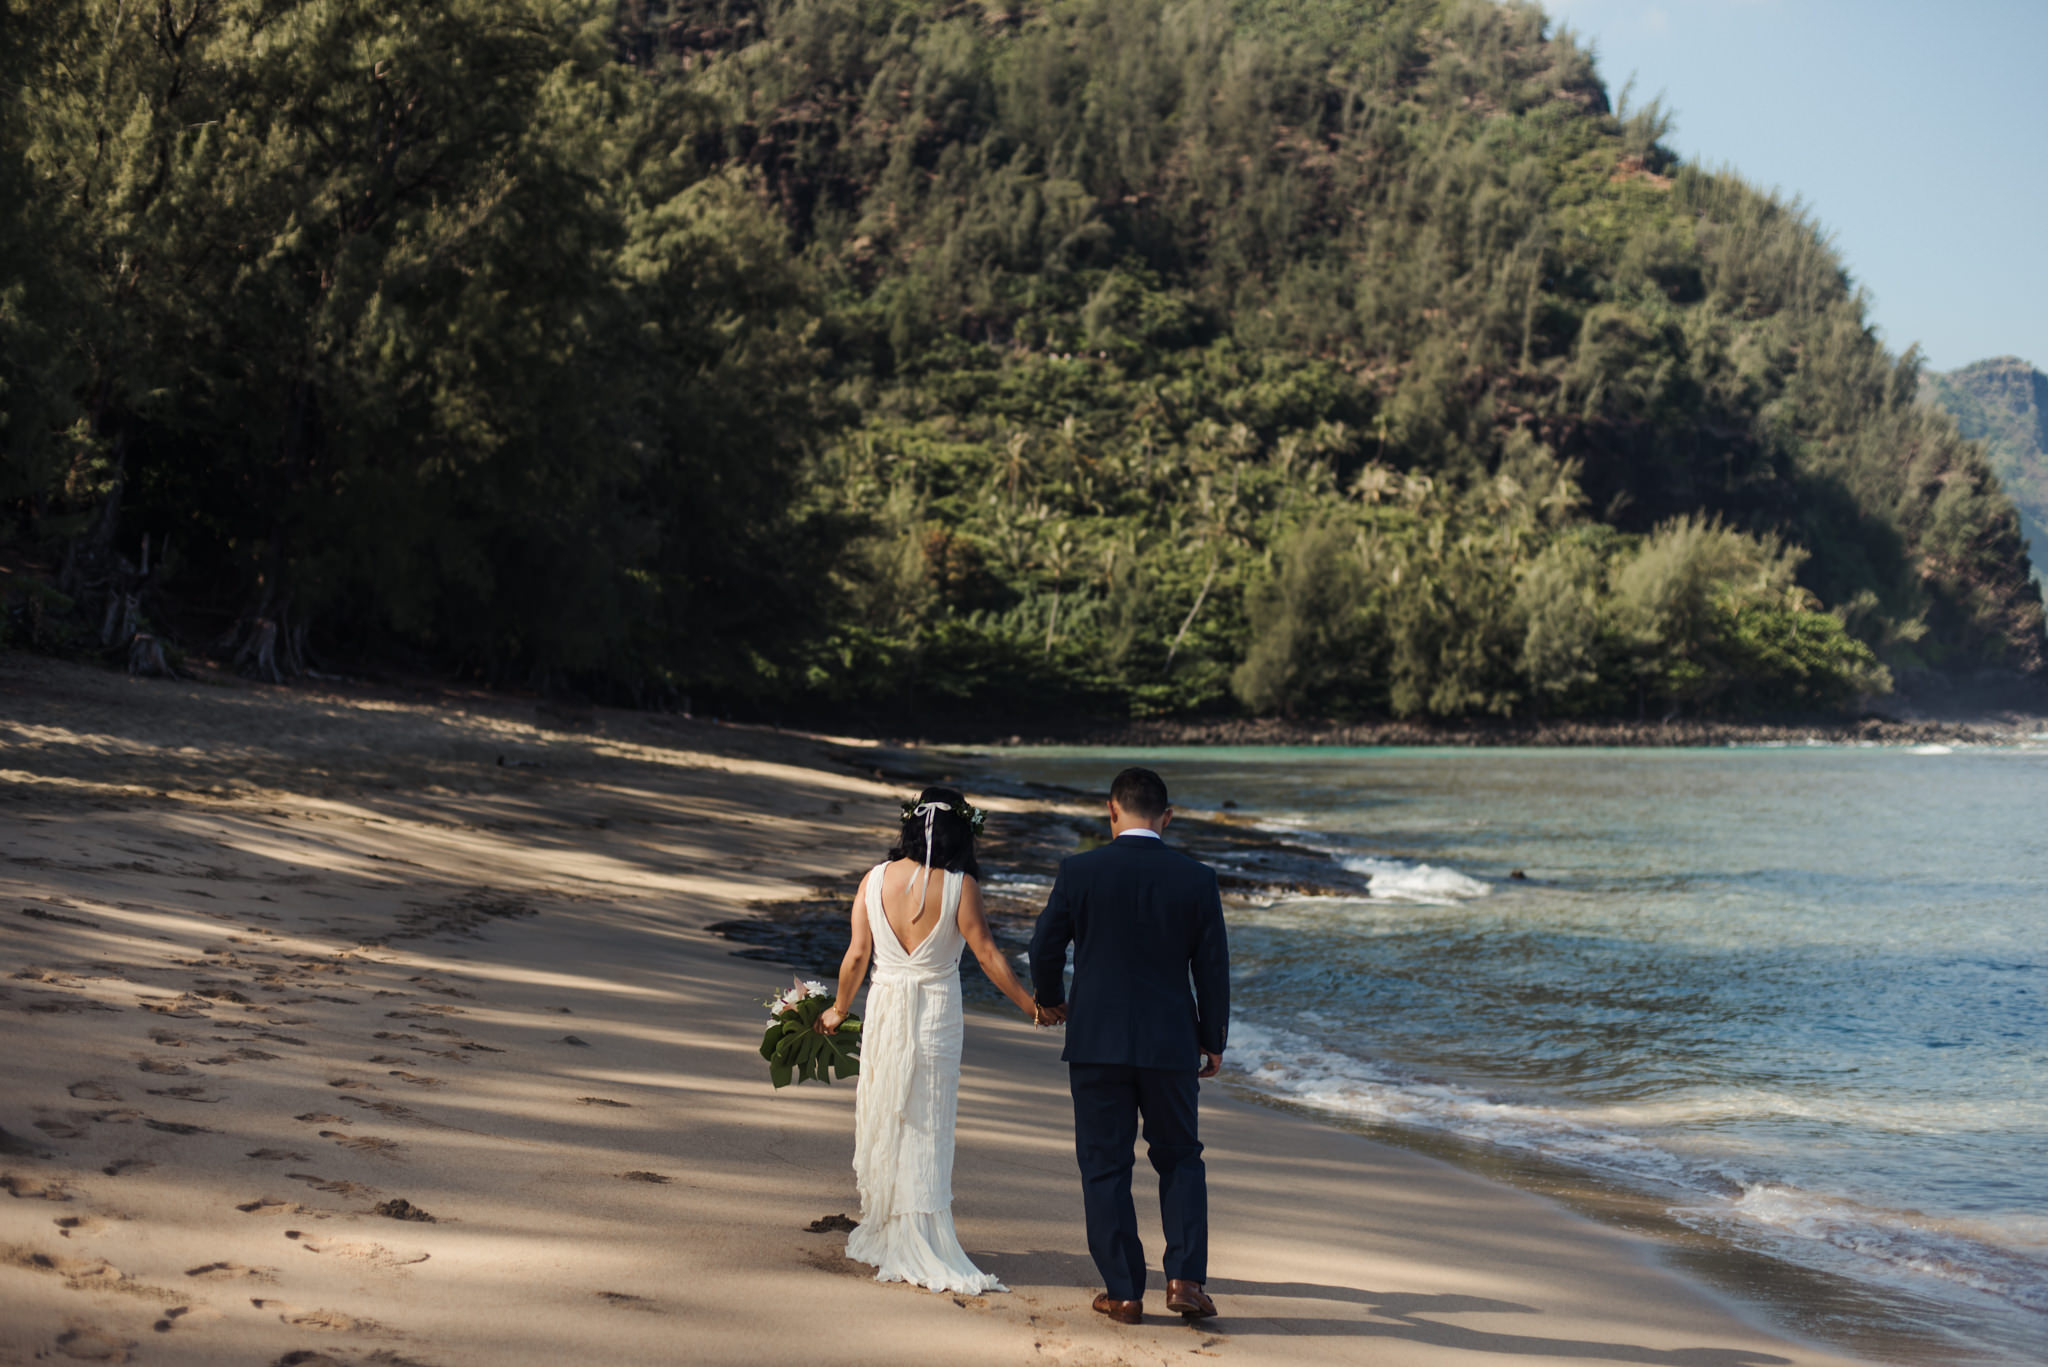 bride and groom walking on beach